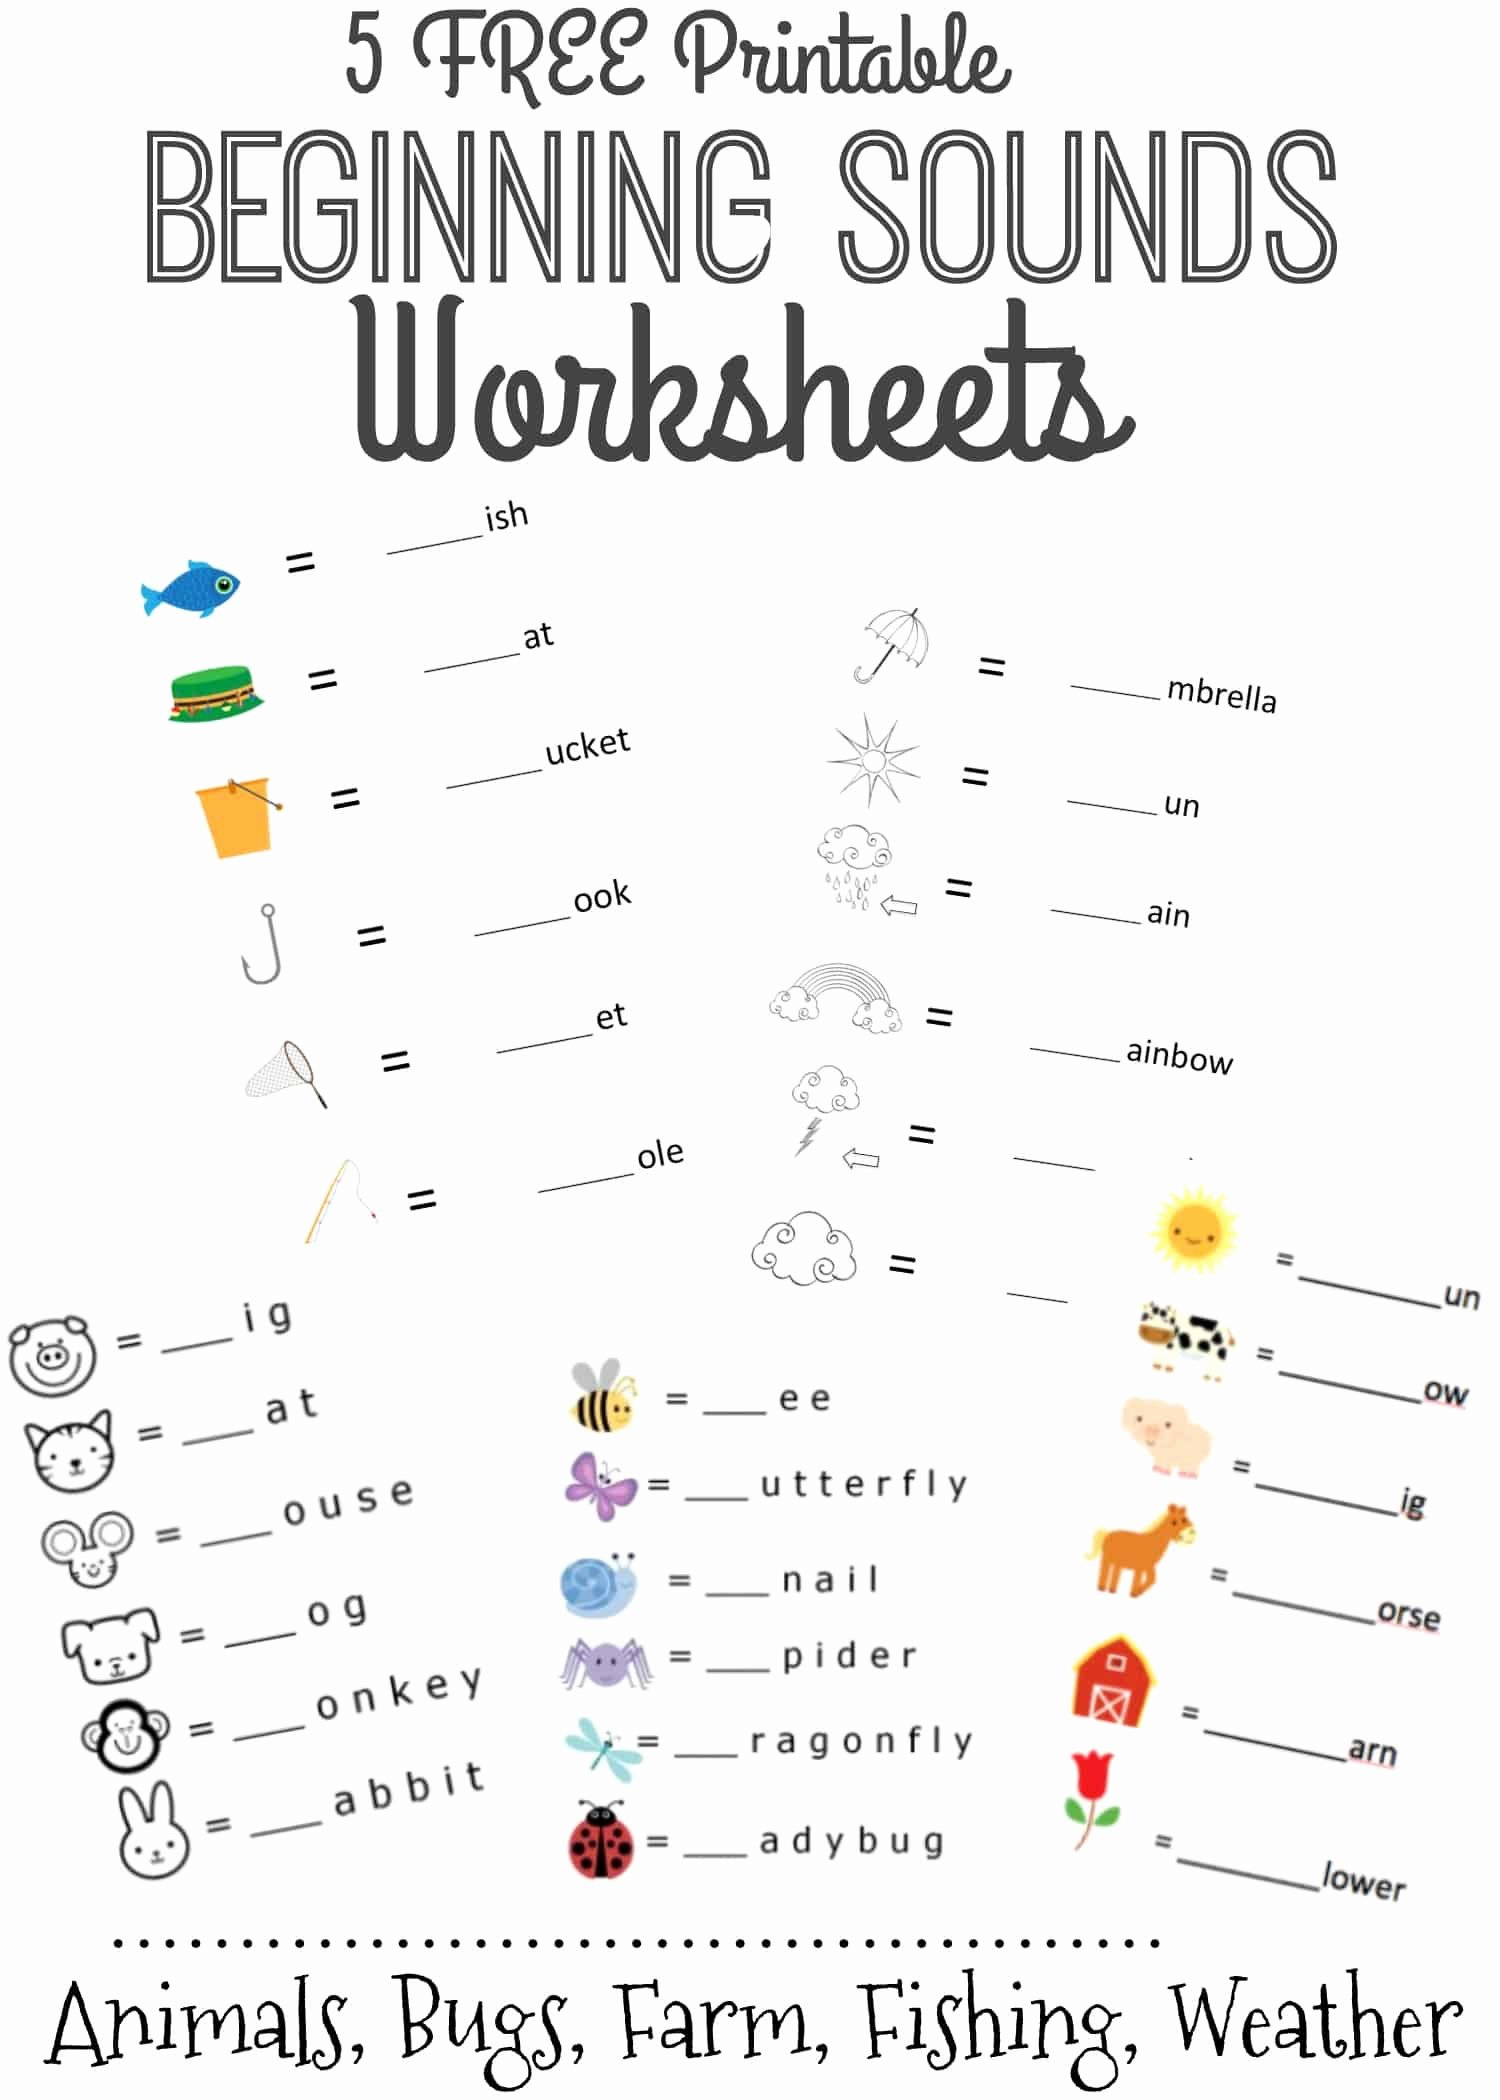 Learning Letters Worksheets for Preschoolers Inspirational Math Worksheet Printable Alphabet Worksheets Free